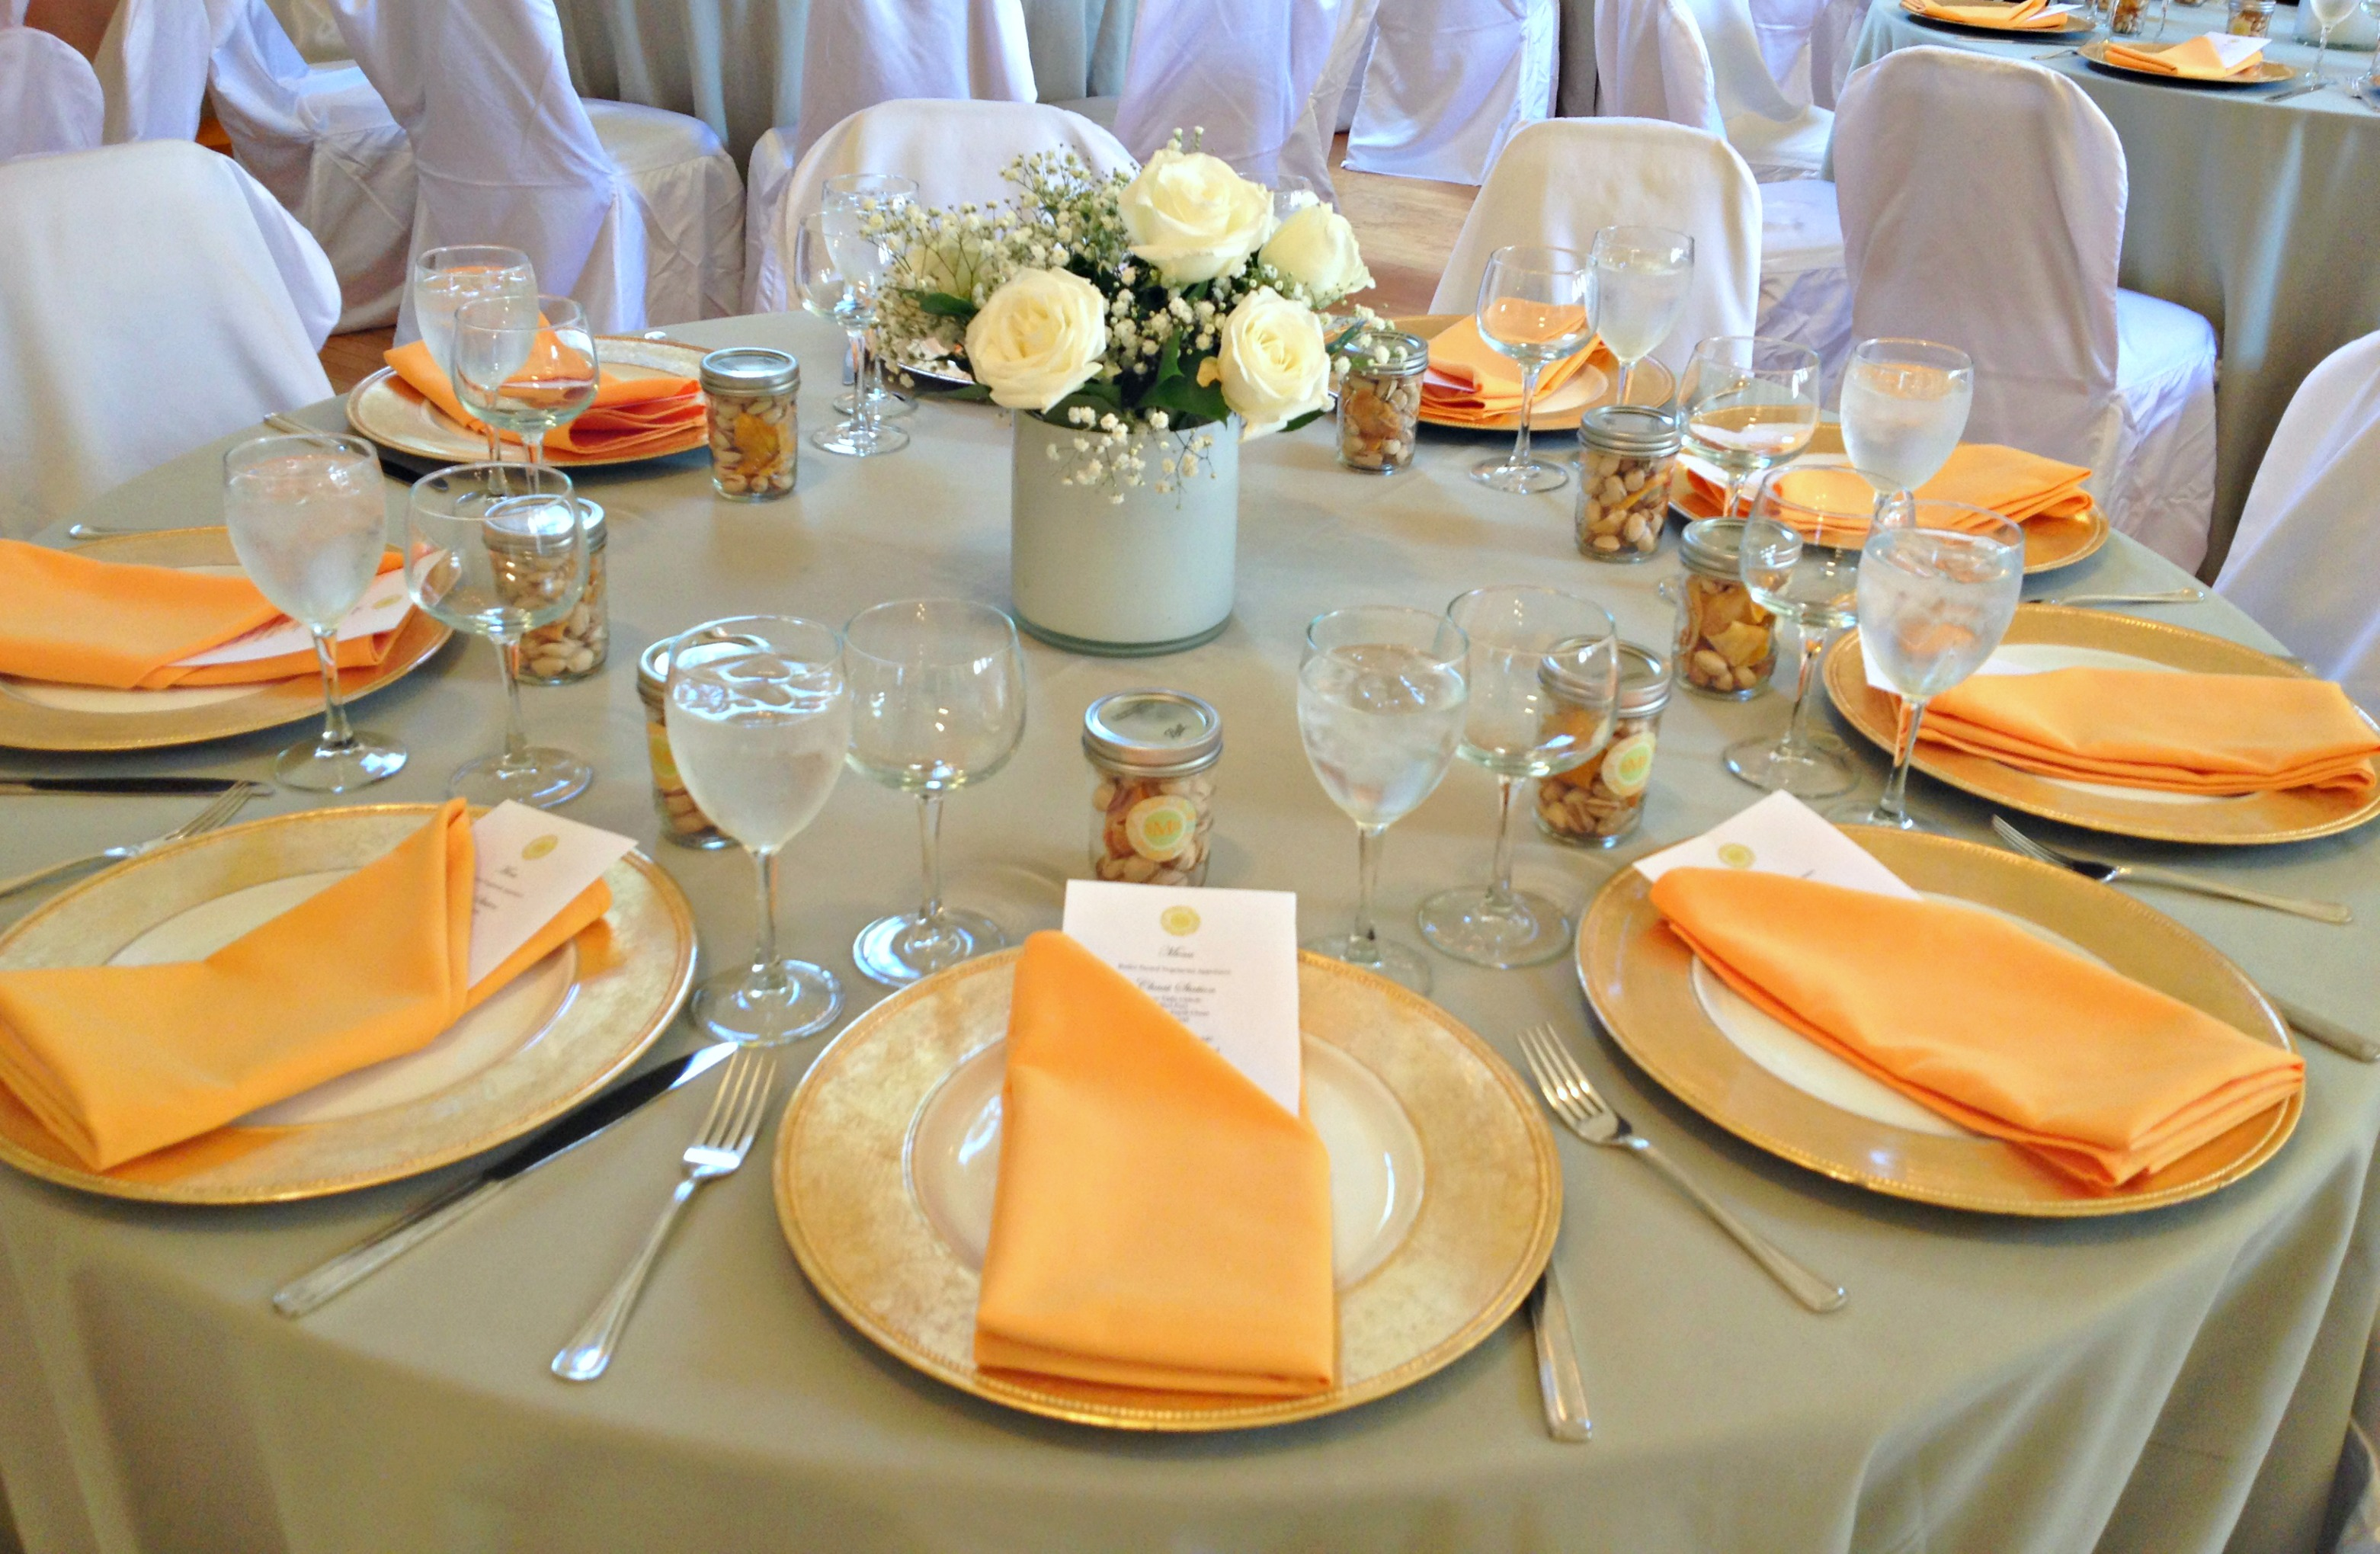 Lovely Orange Table Setting Wedding & Exciting Design Wedding Table Setting Online Pictures - Best Image ...